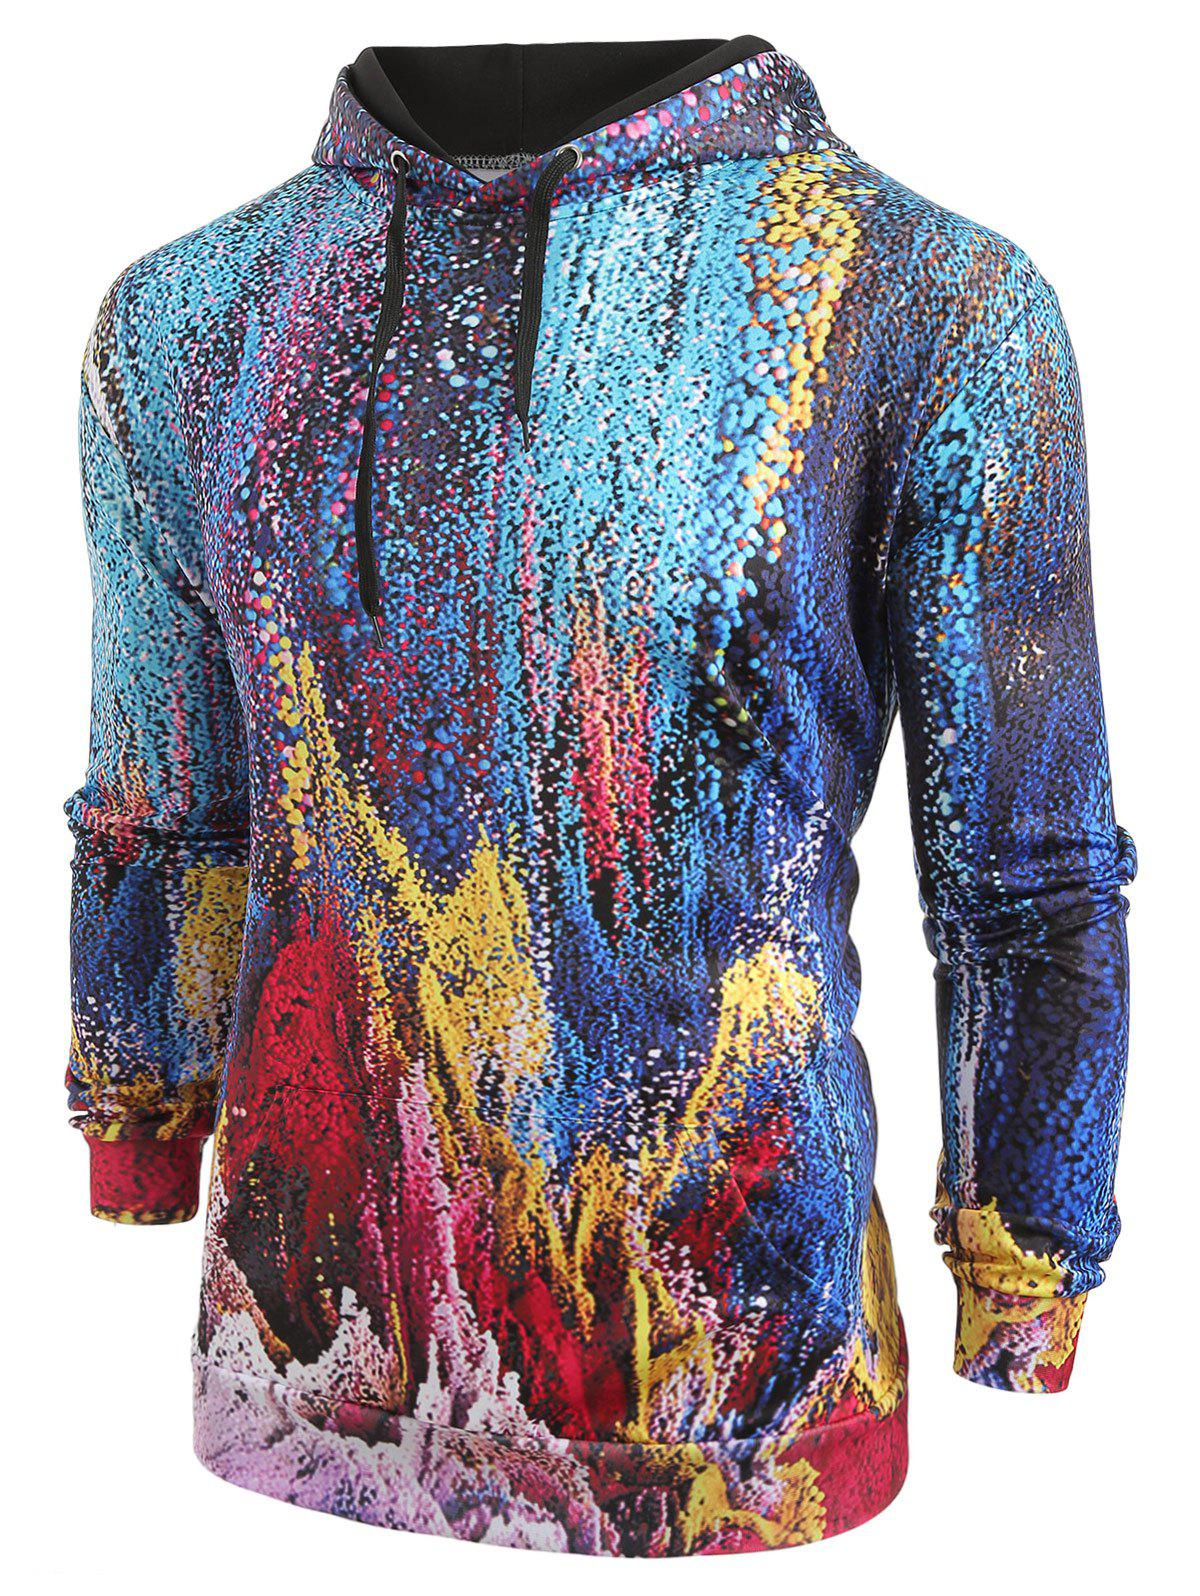 Abstract Pattern Kangaroo Pocket Hoodie - multicolor XL